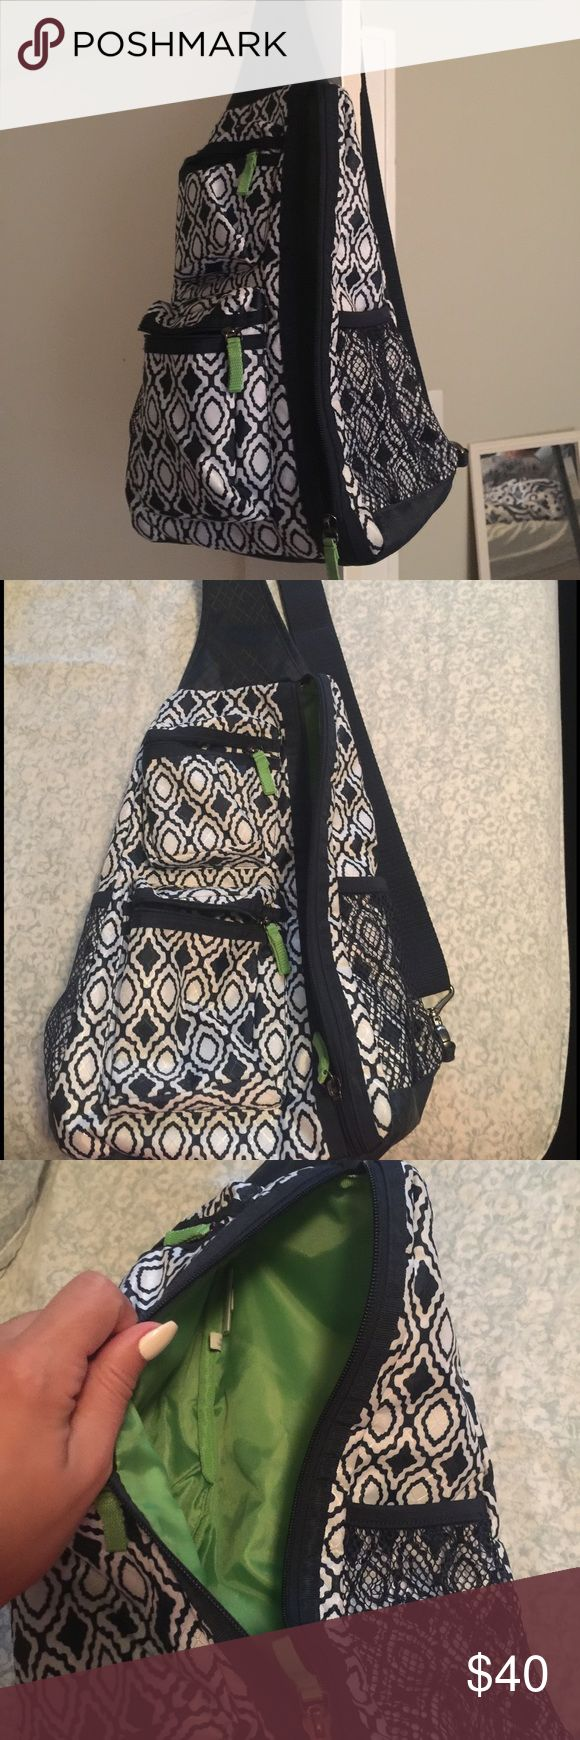 31 bag sling pack Only used on one trip - so like new. Thirty One Bags Crossbody Bags